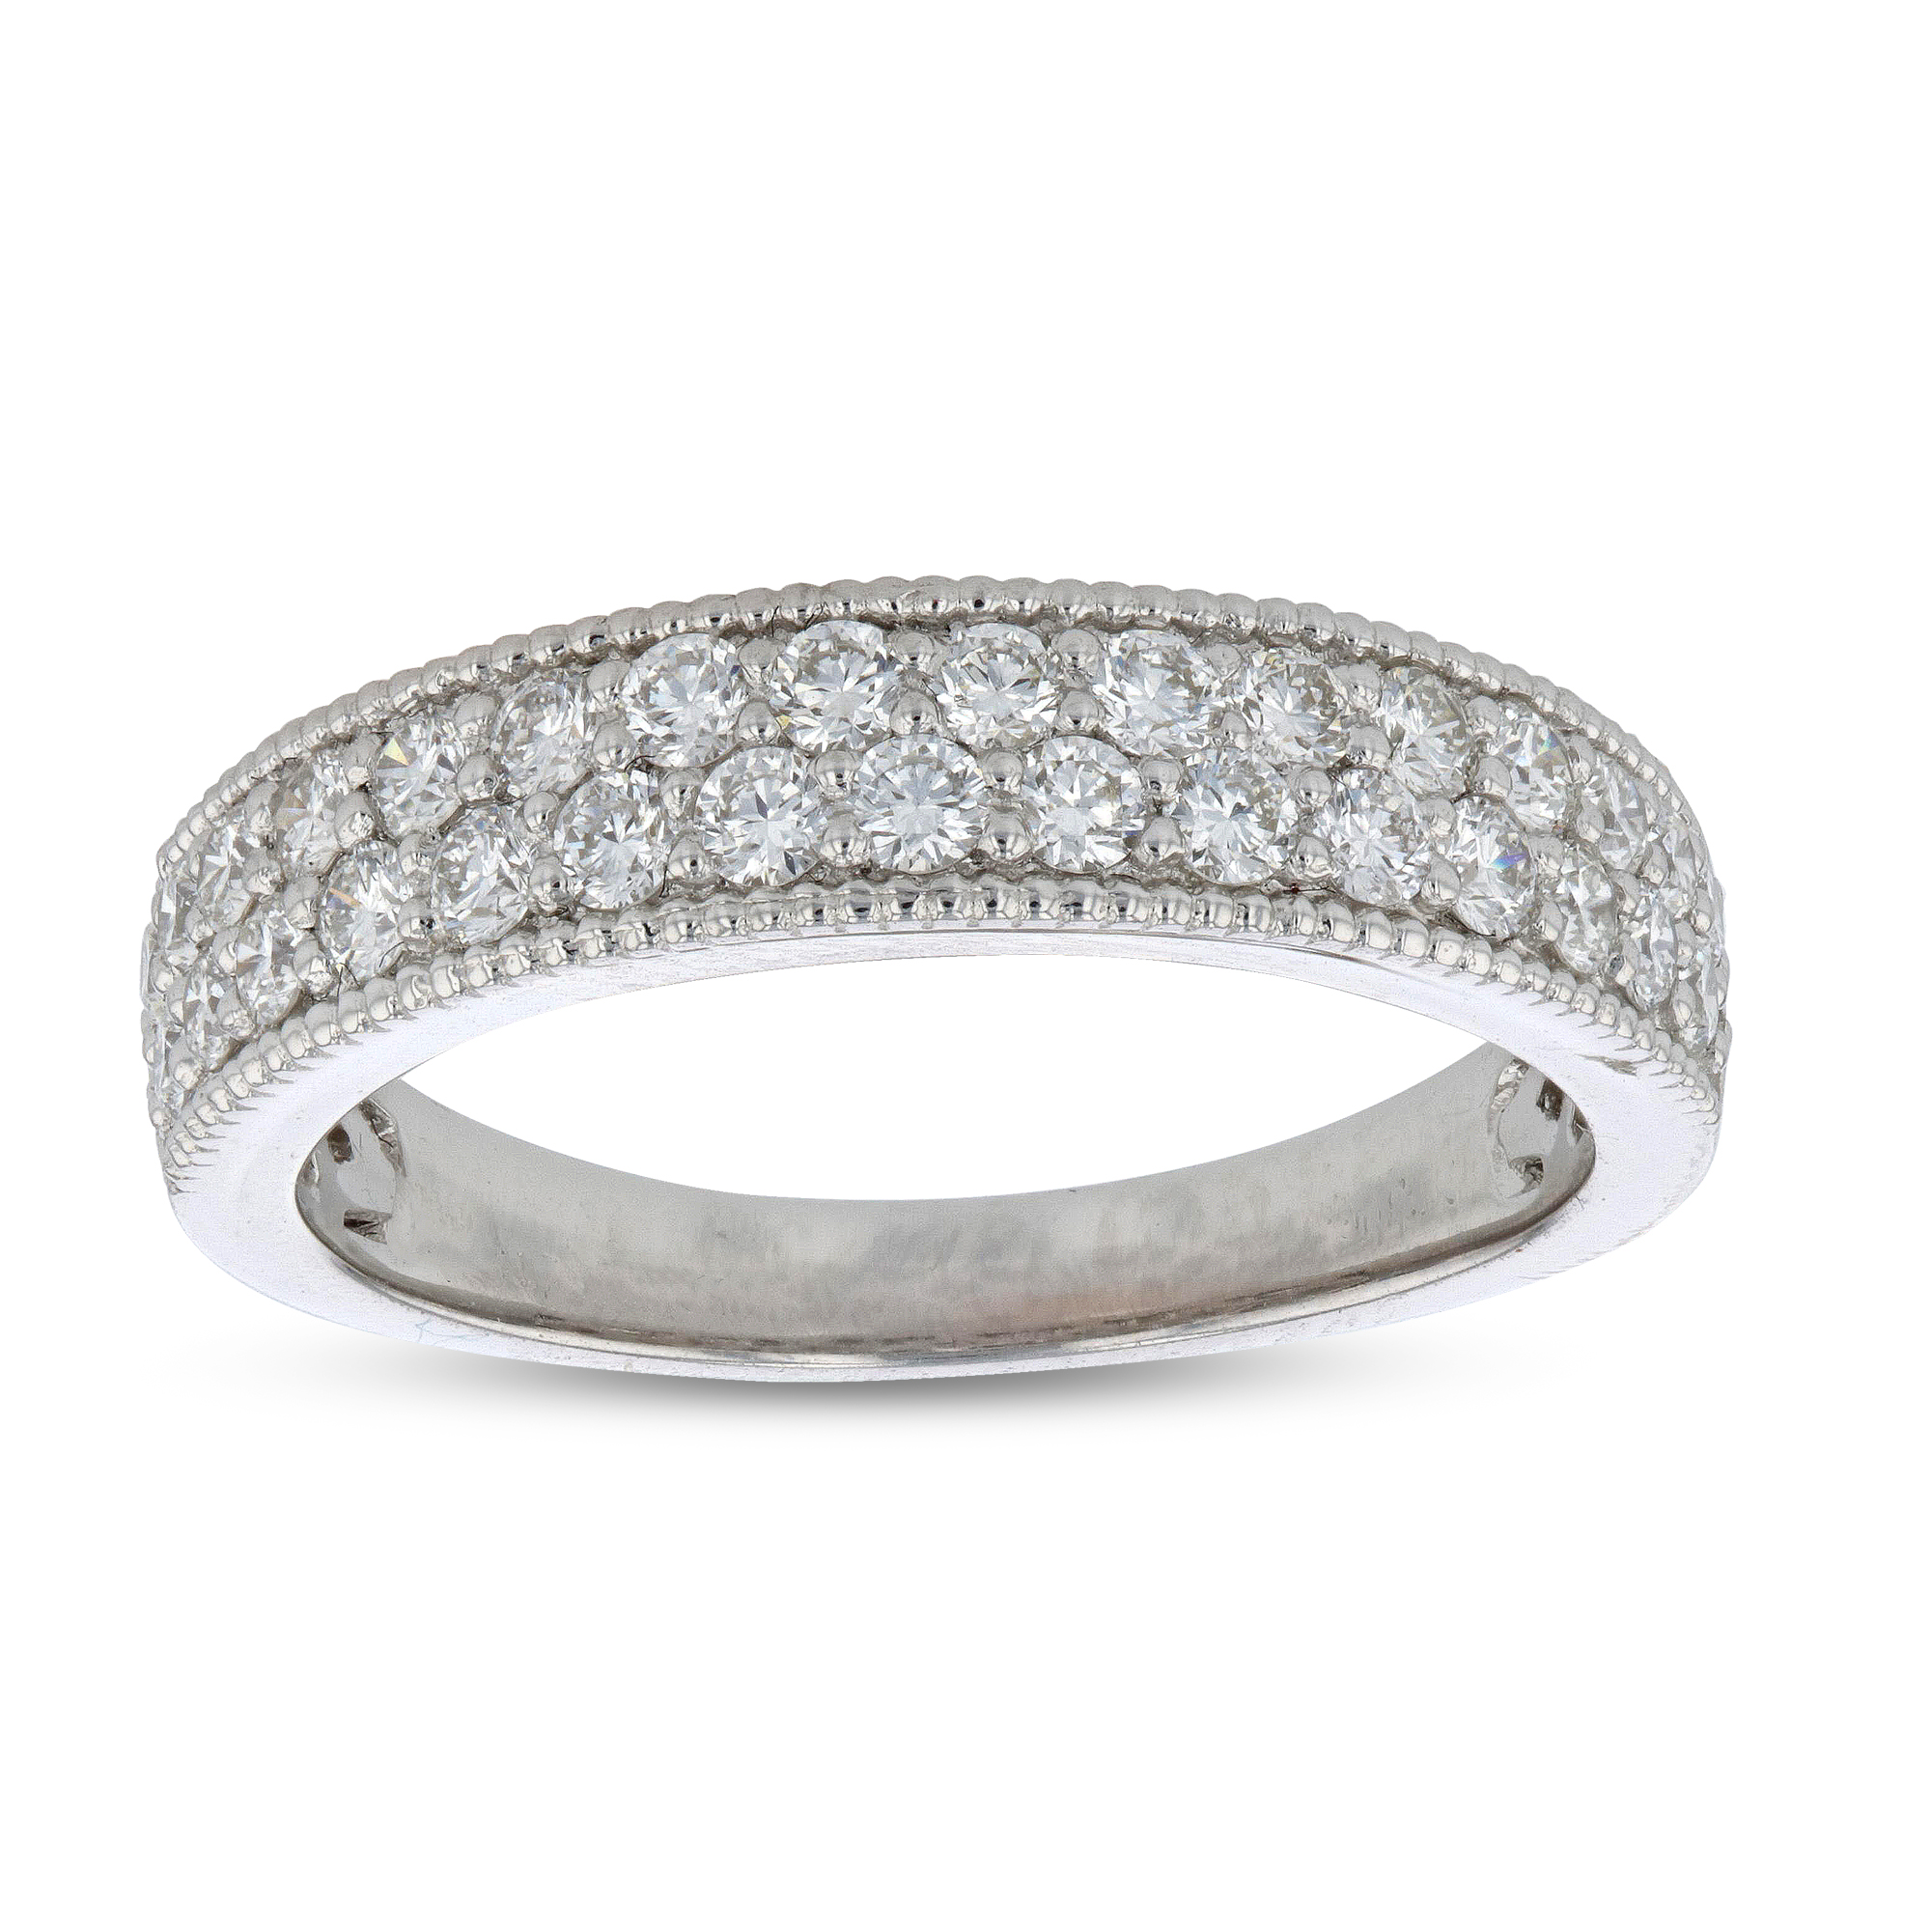 View 0.74ctw Diamond Wedding Band in 18k White Gold